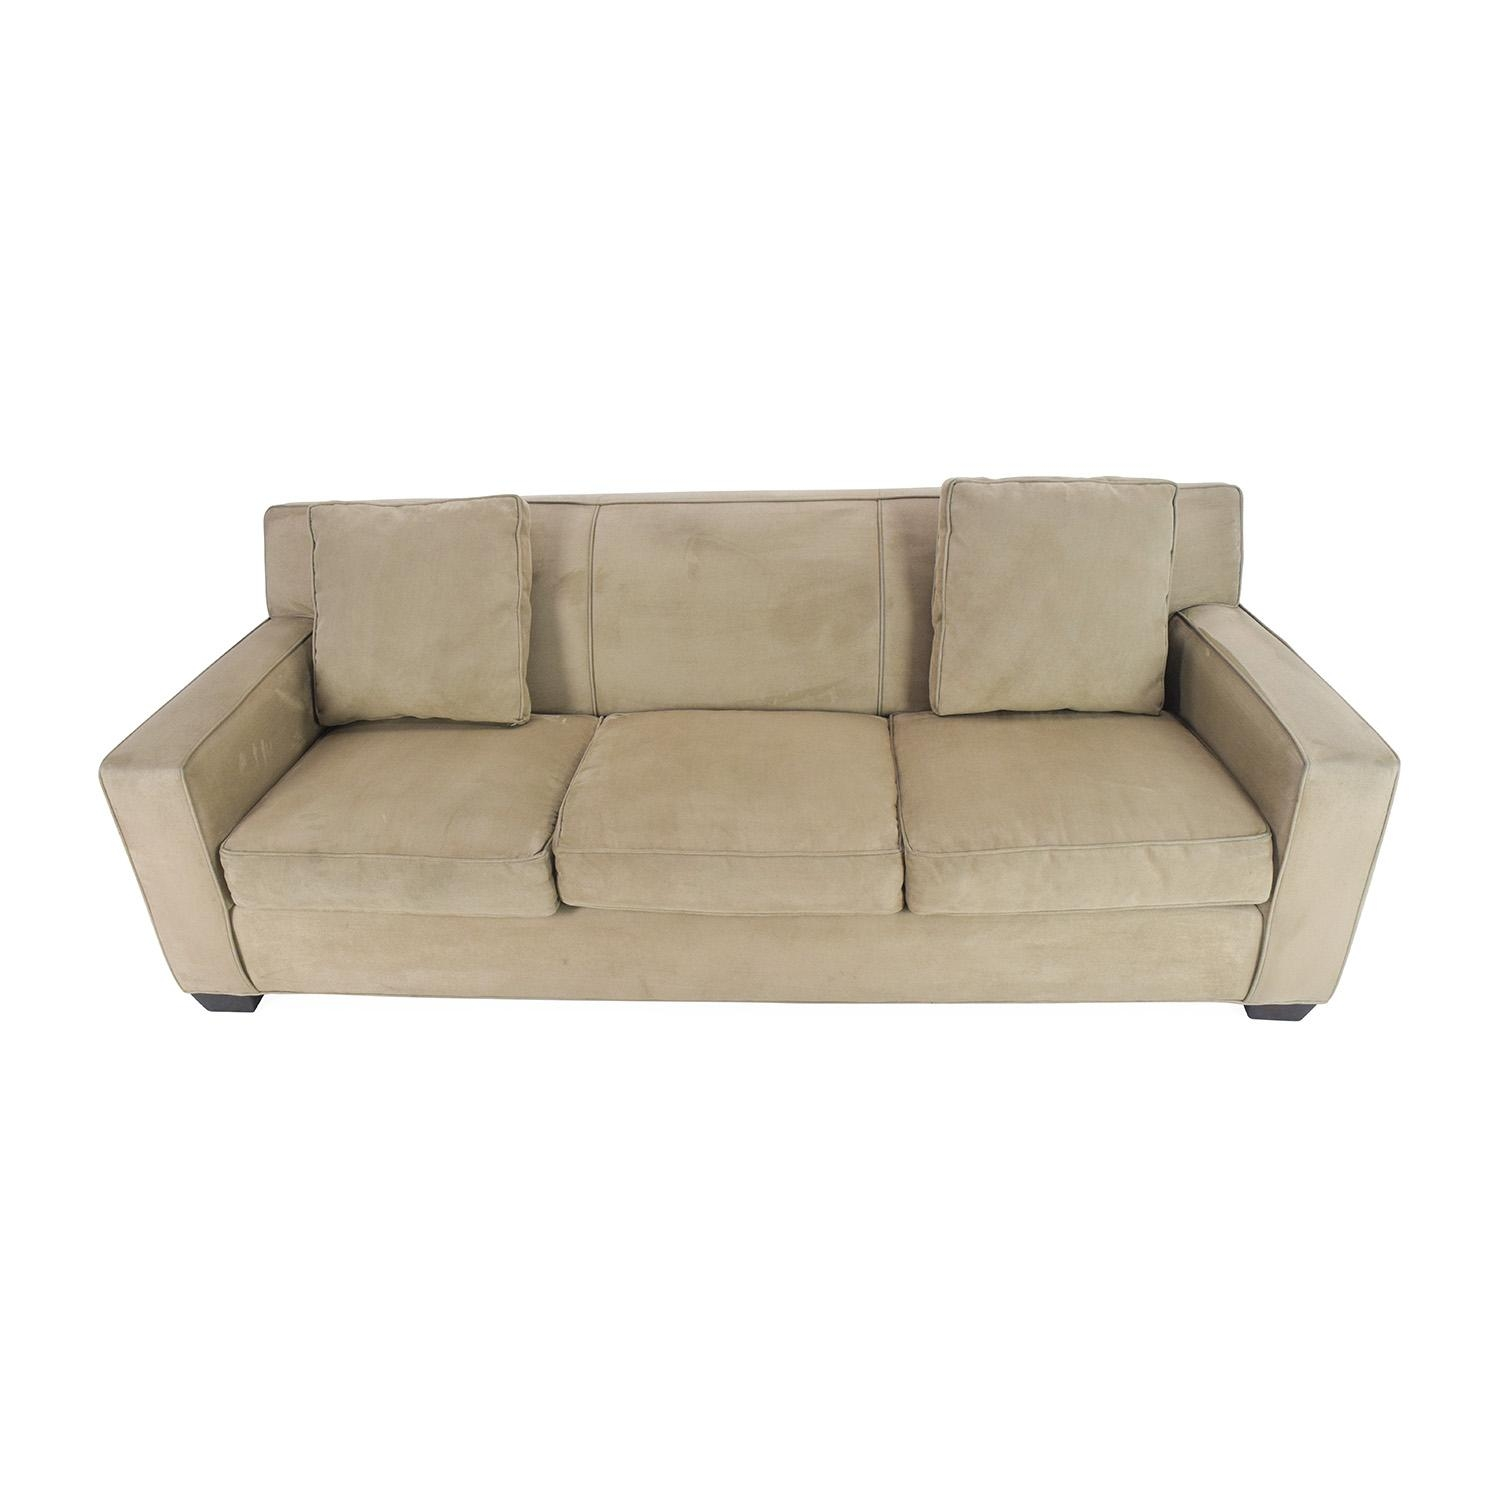 78% Off – Crate And Barrel Crate And Barrel Cameron Sofa / Sofas Regarding Crate And Barrel Futon Sofas (Image 9 of 20)